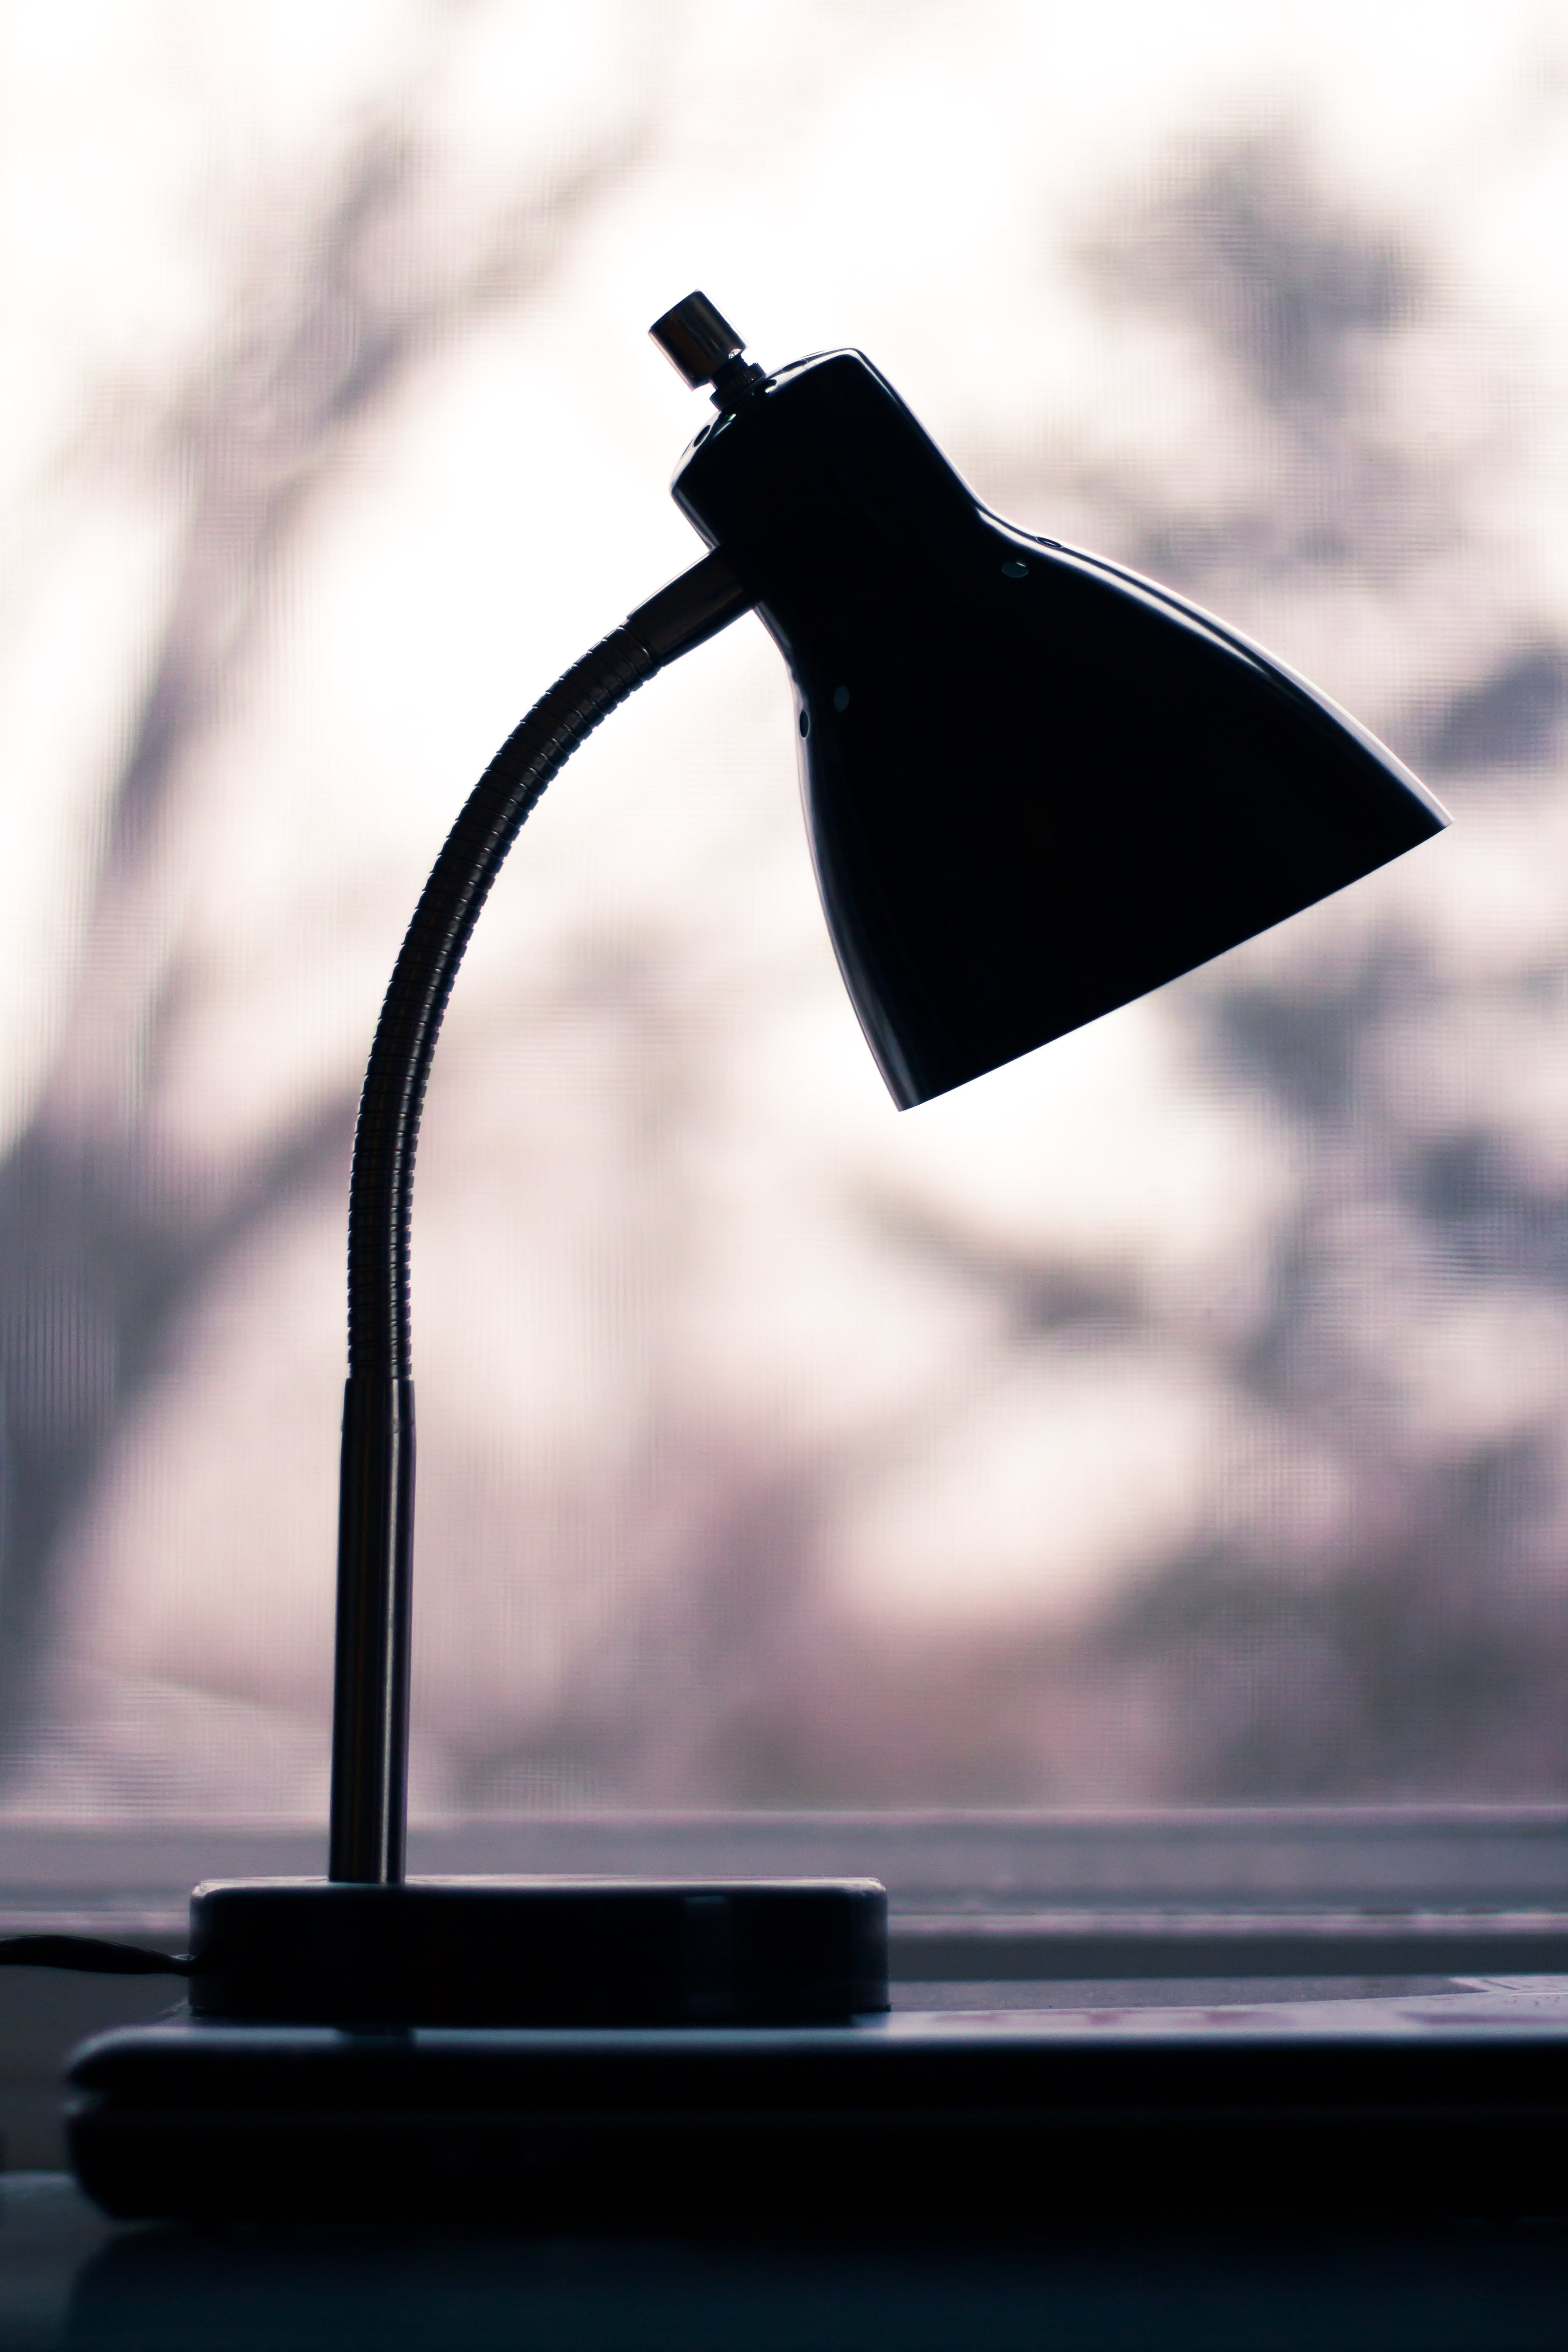 Silhouette of Black Desk Lamp